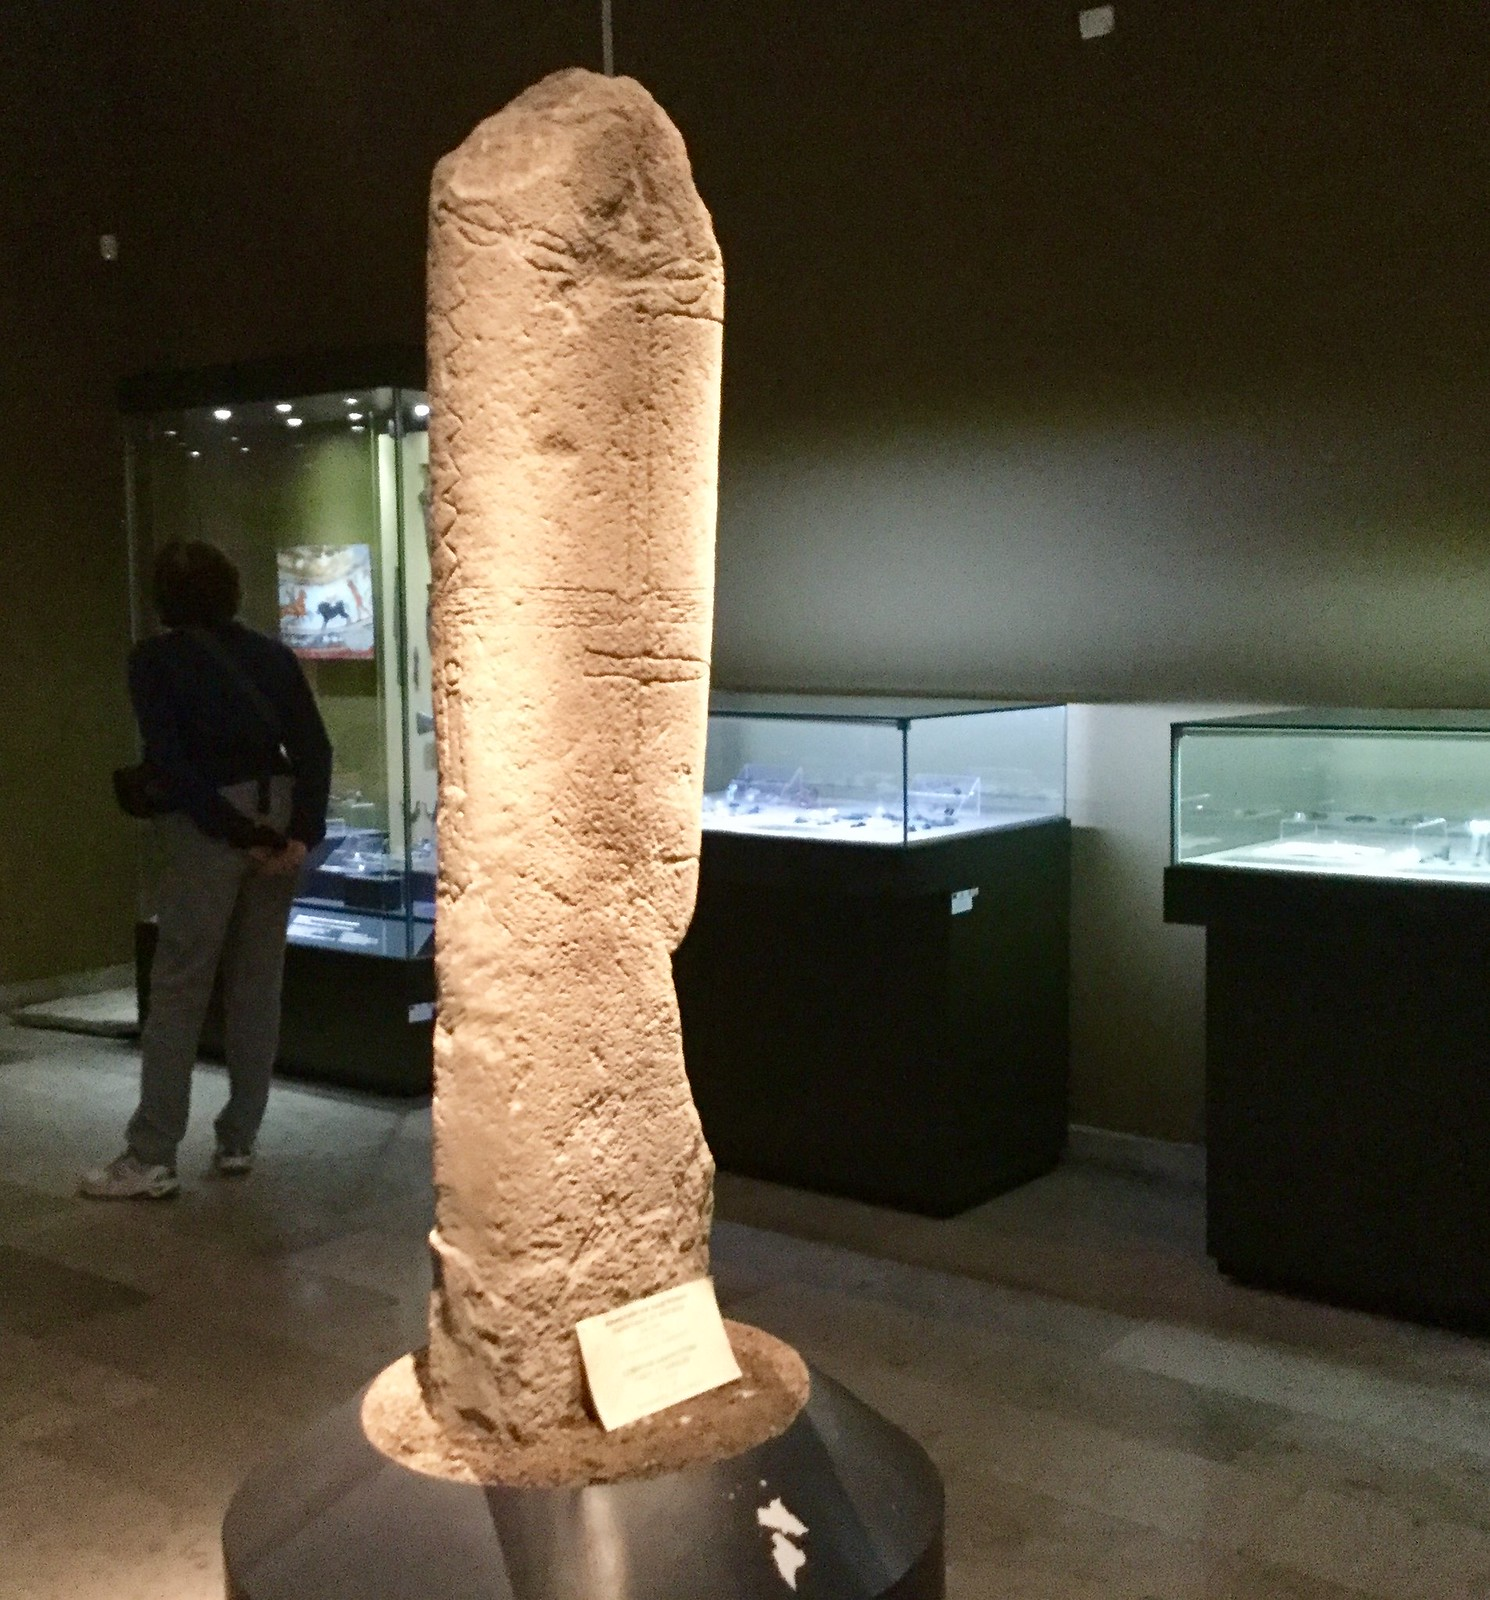 201705 - Balkans - Archaeology Museum Stele - 16 of 66 - Varna - Varna, May 25, 2017